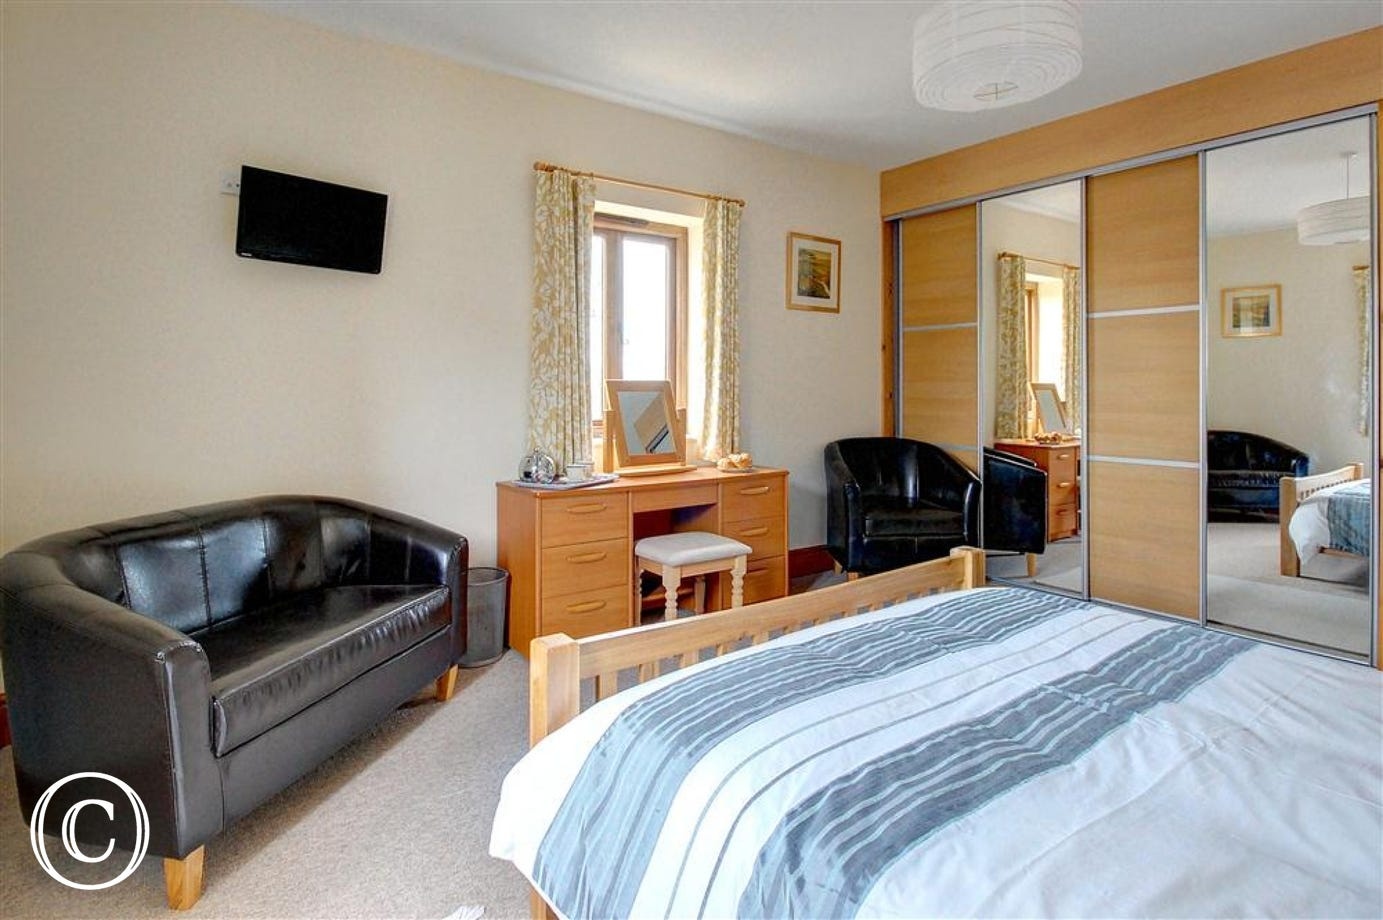 Take it at ease and enjoy some television in bed in this double bedded room.